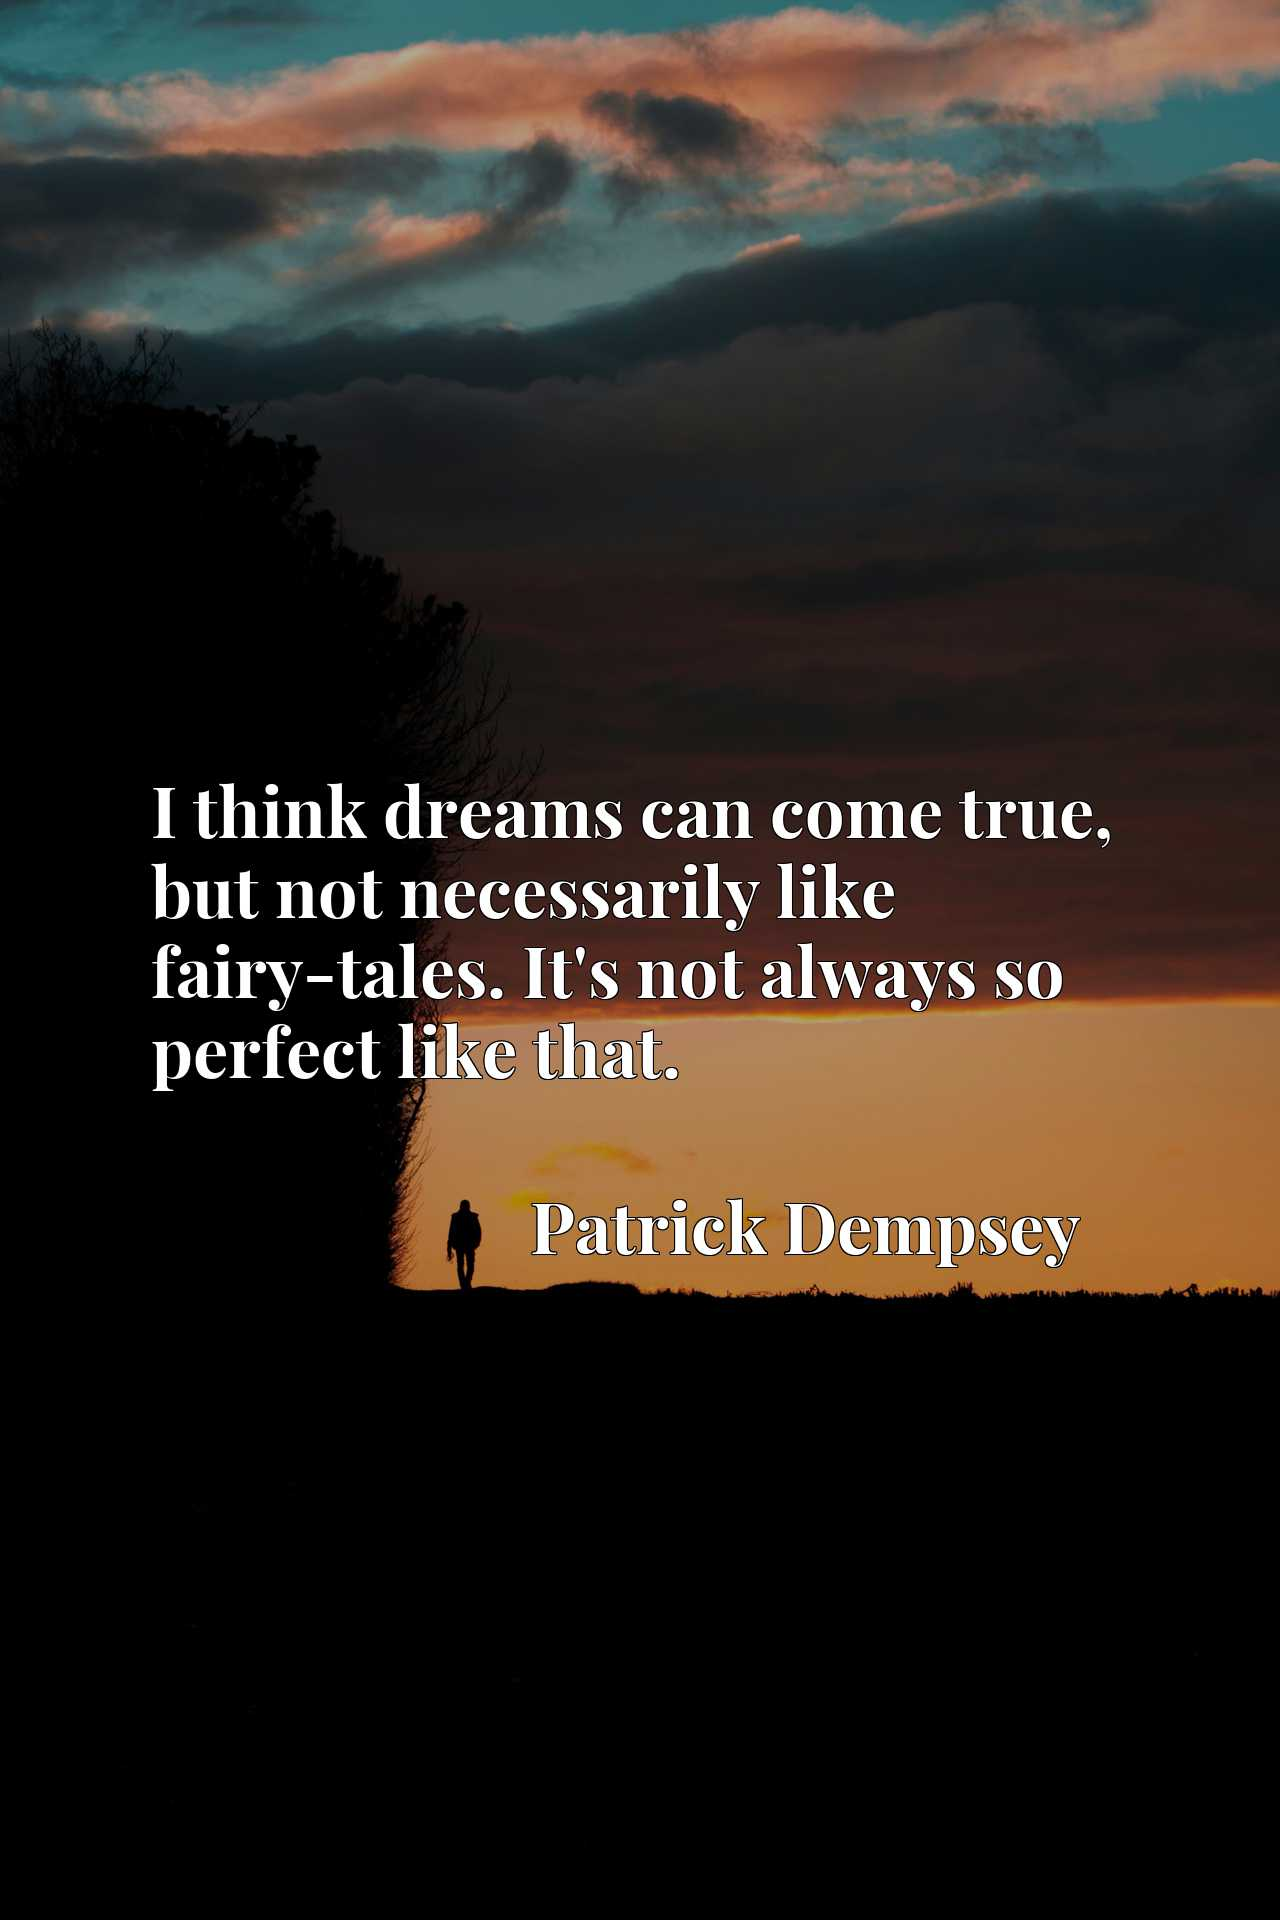 I think dreams can come true, but not necessarily like fairy-tales. It's not always so perfect like that.